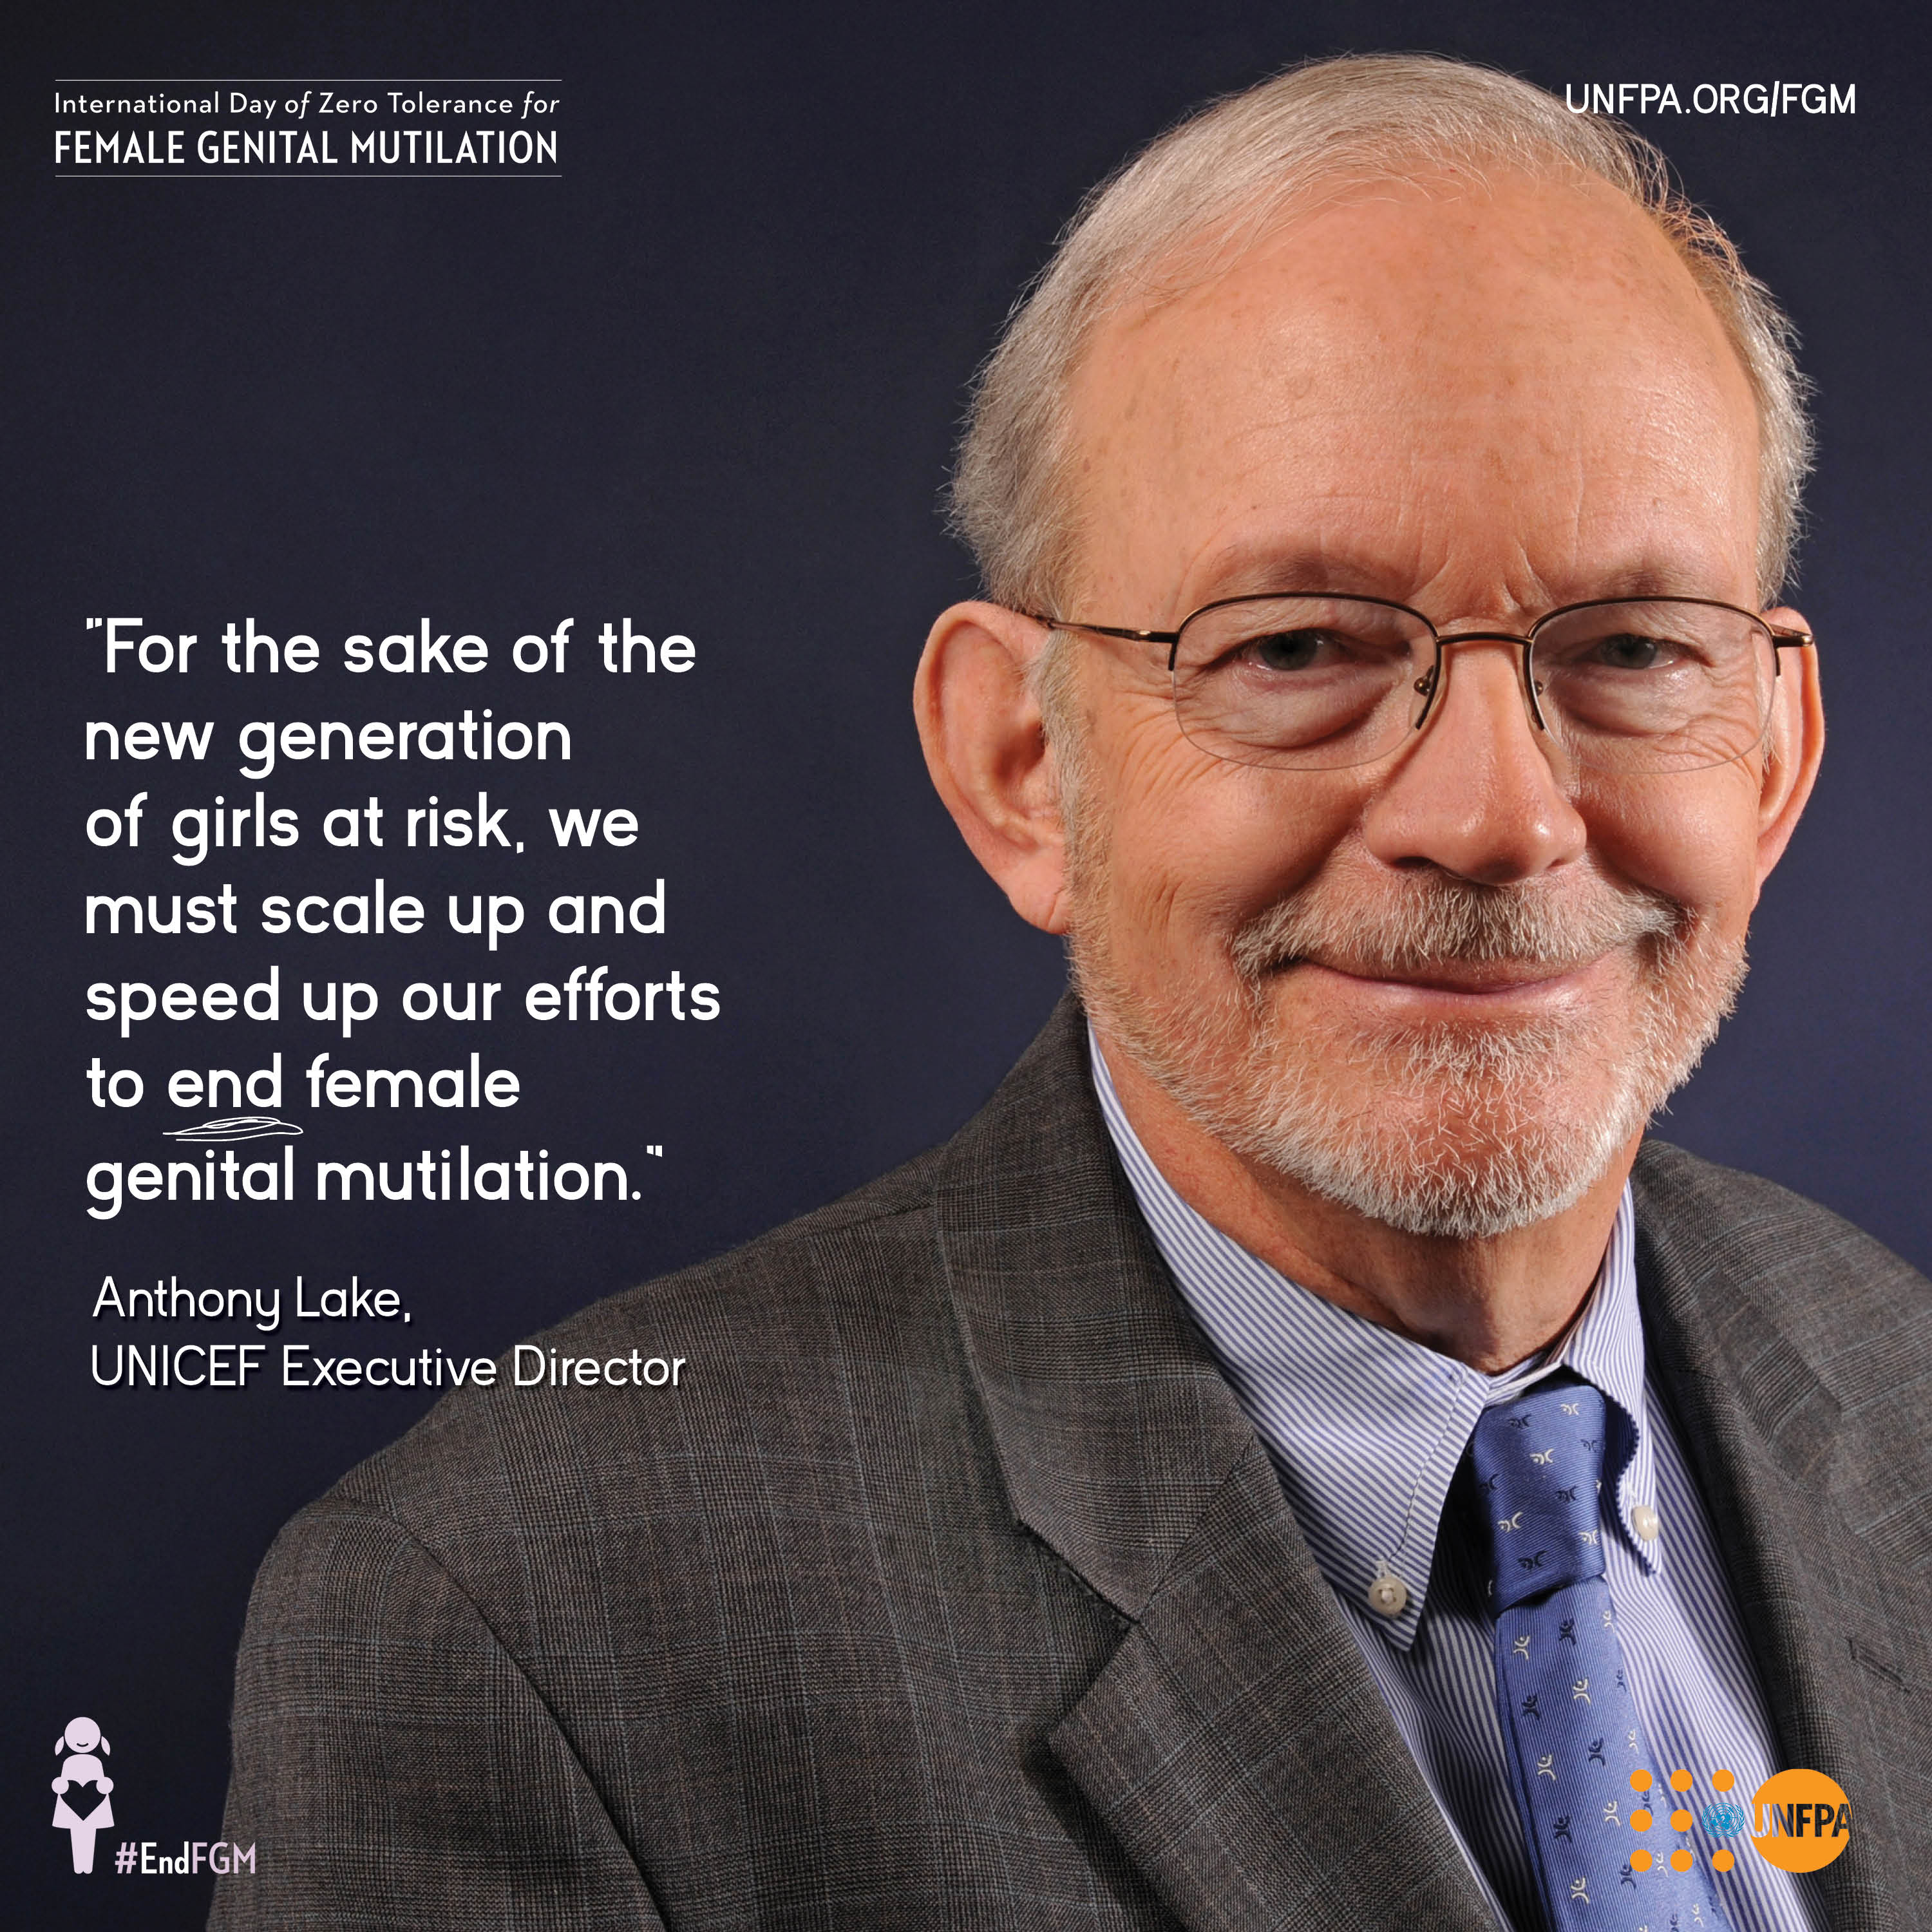 We must put an end to FGM